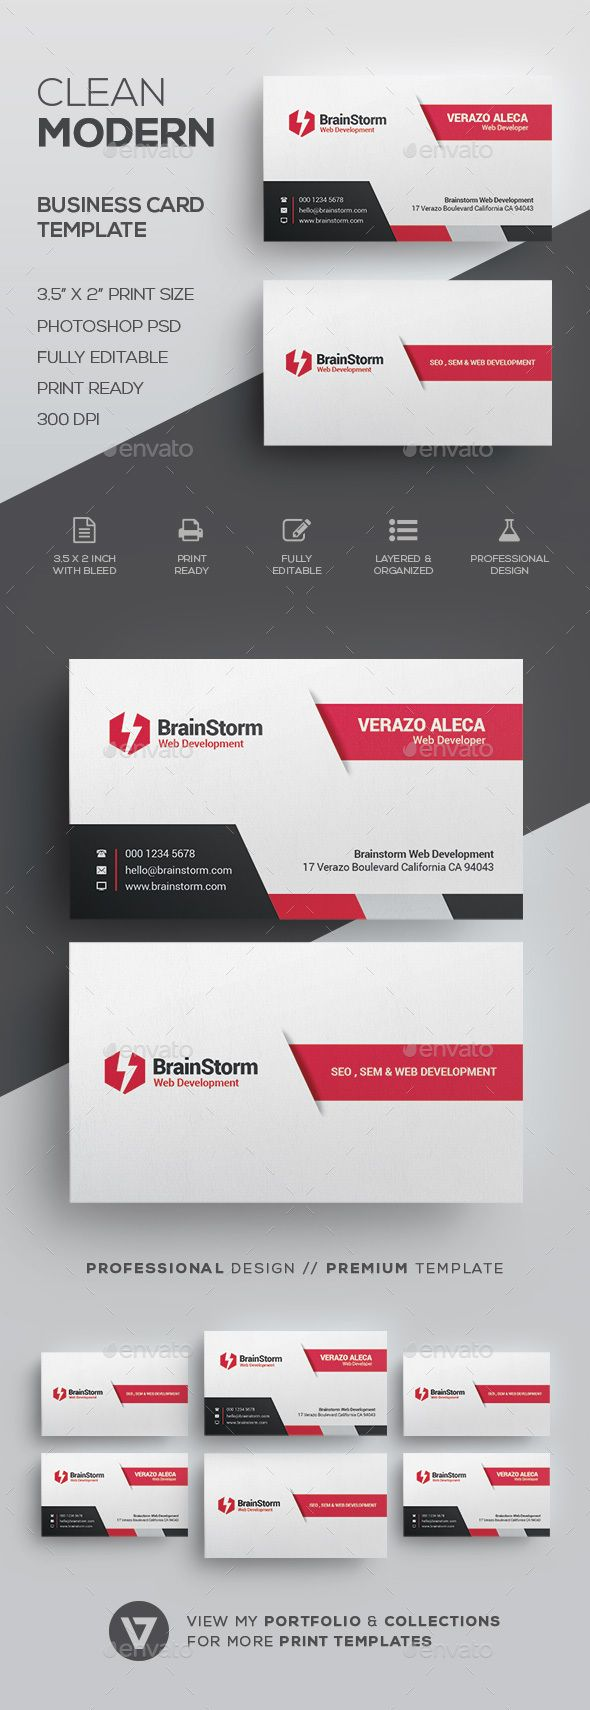 #Clean #Business #Card #Template - #Corporate Business Cards Download here: grap...